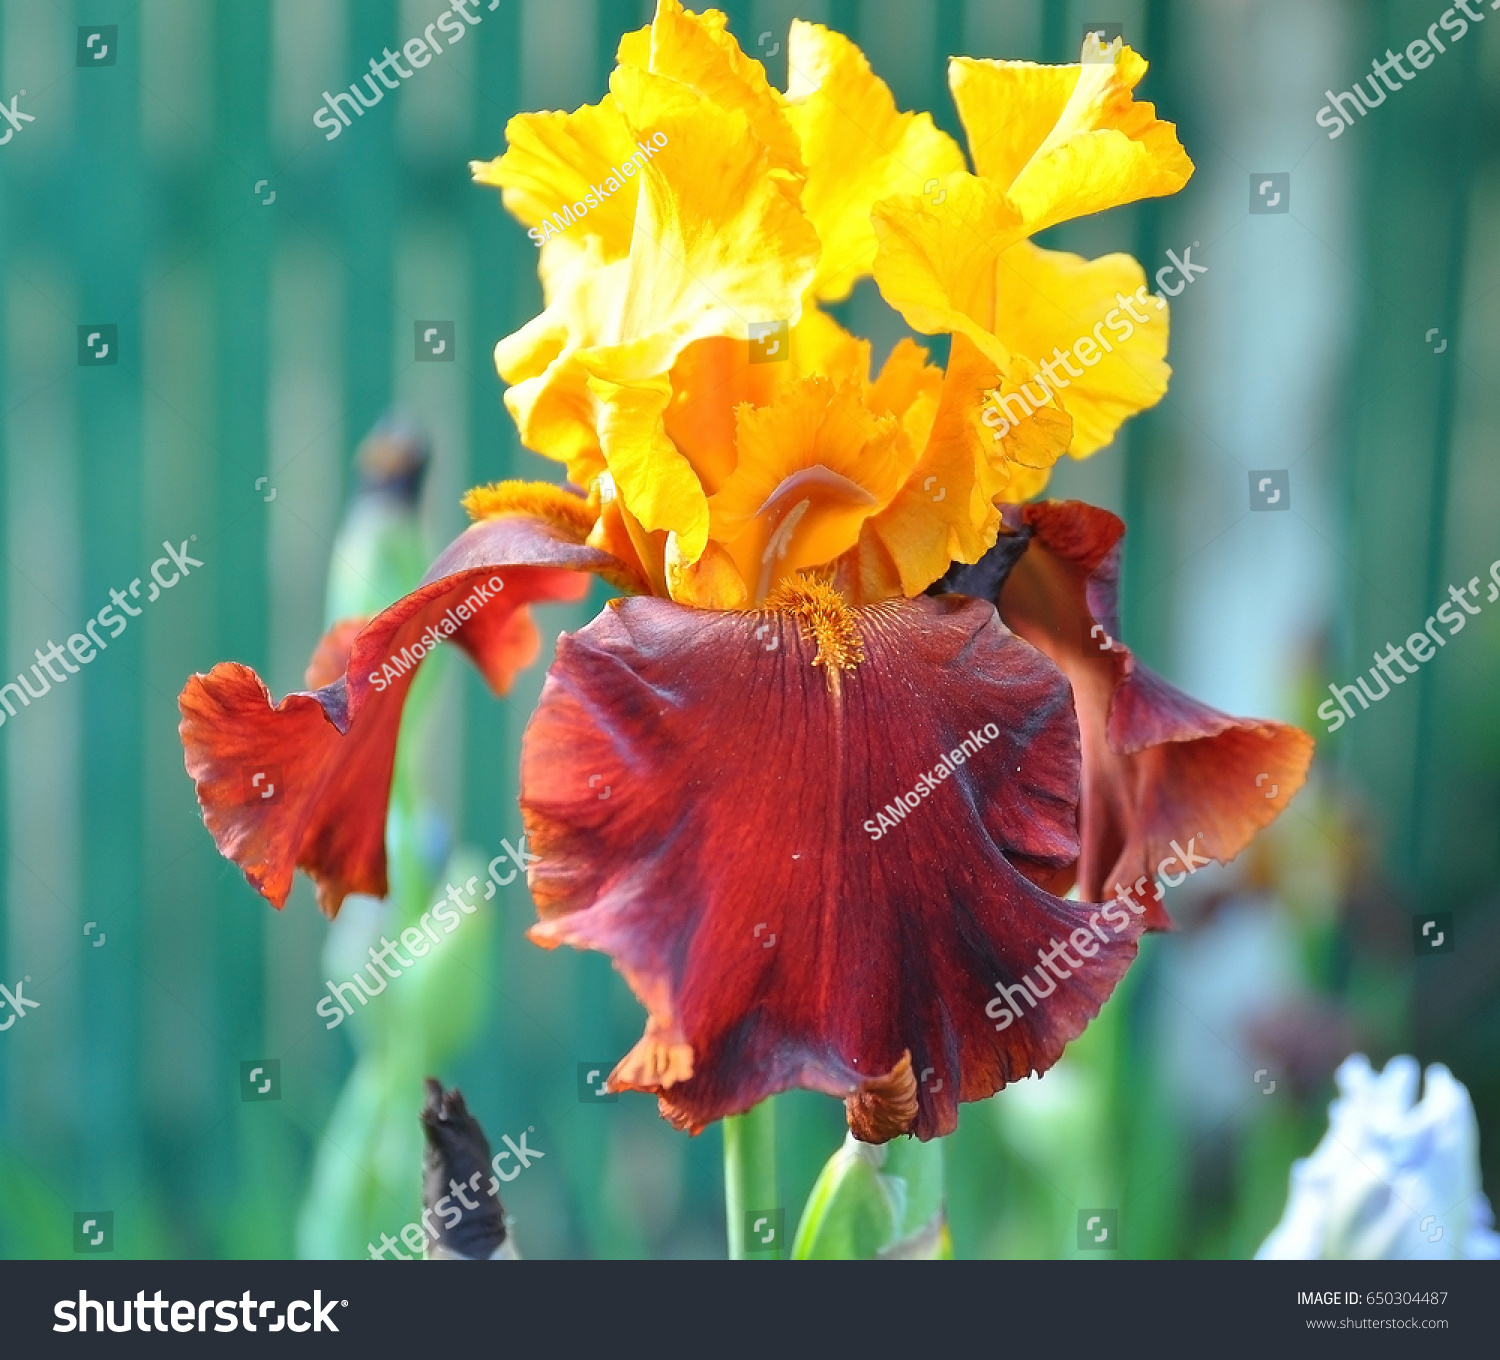 Yellow red iris flower macro on stock photo 650304487 shutterstock yellow and red iris flower macro on natural green background yellow flower de luce close izmirmasajfo Images